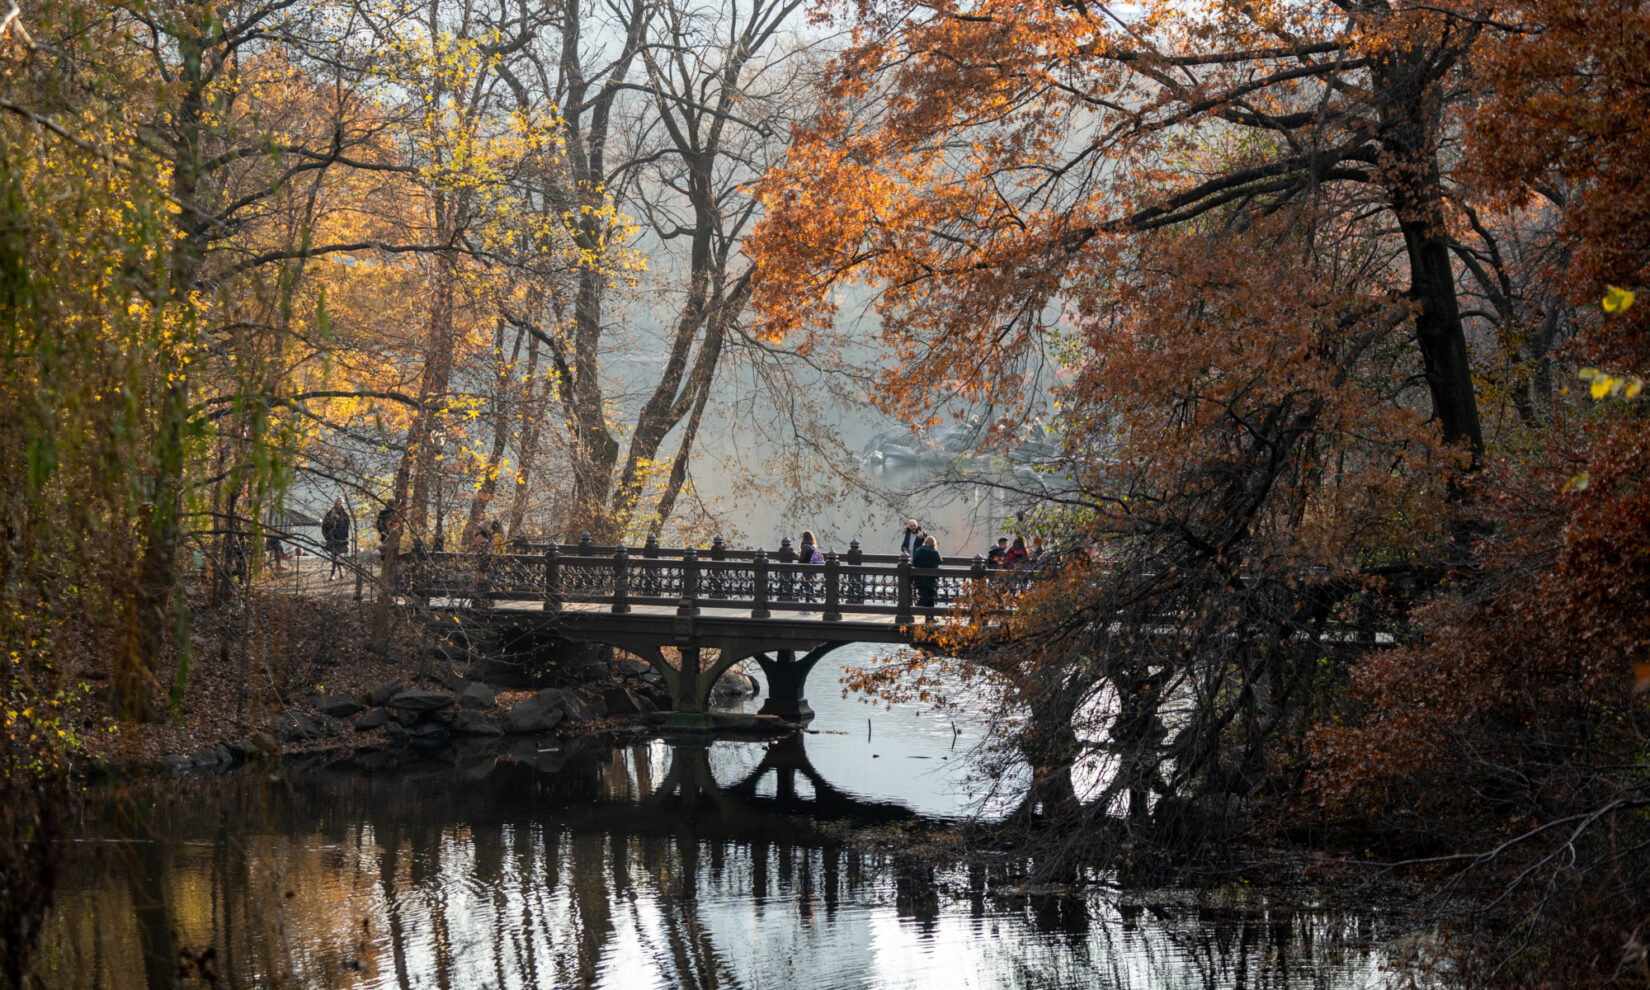 The bridge, shot in autumn light, under arched branches of foliage